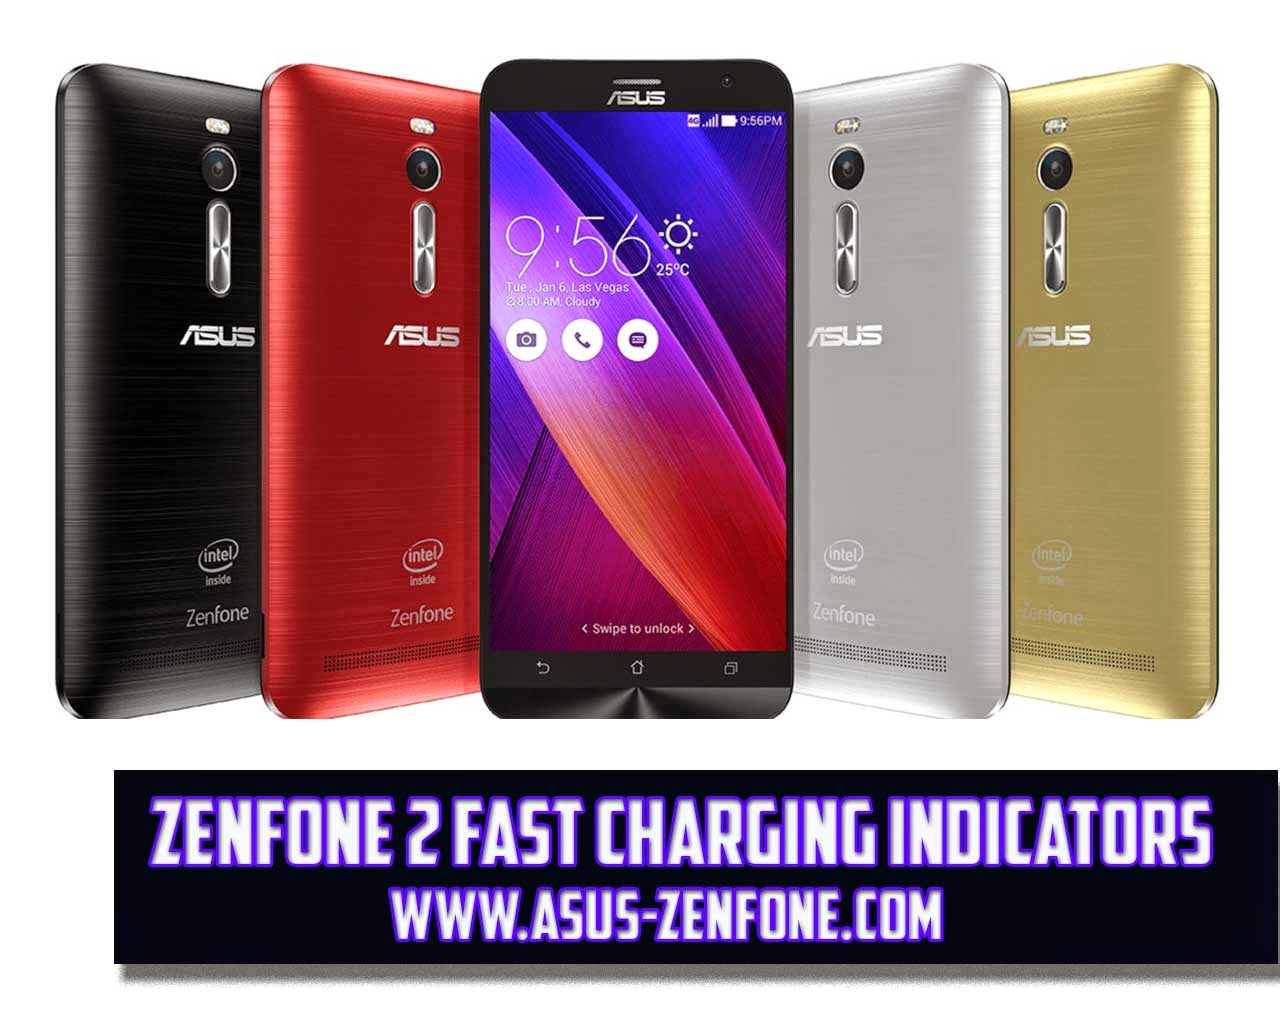 asus zenfone 2 fast charging indicators asus zenfone blog news tips tutorial download and rom. Black Bedroom Furniture Sets. Home Design Ideas